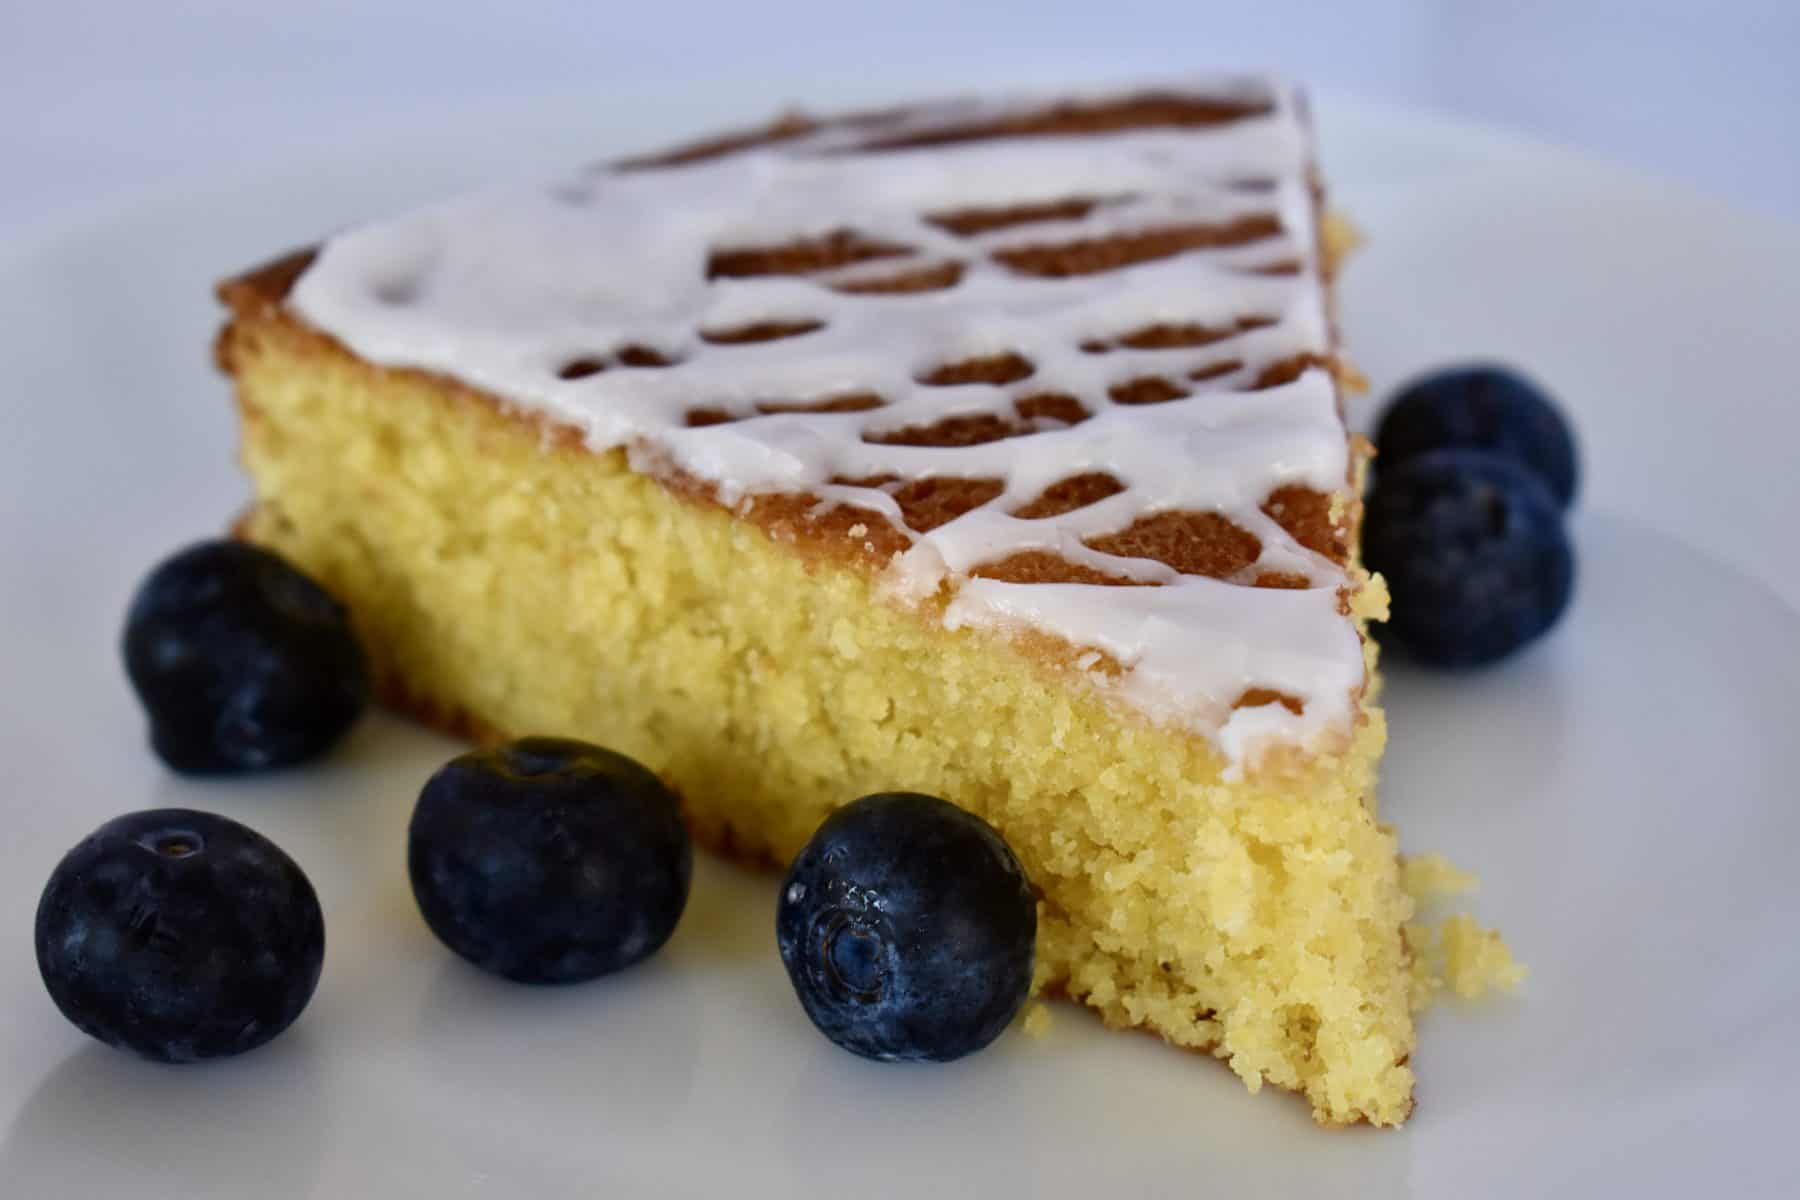 Lemon Polenta Cake on a plate with blueberries.